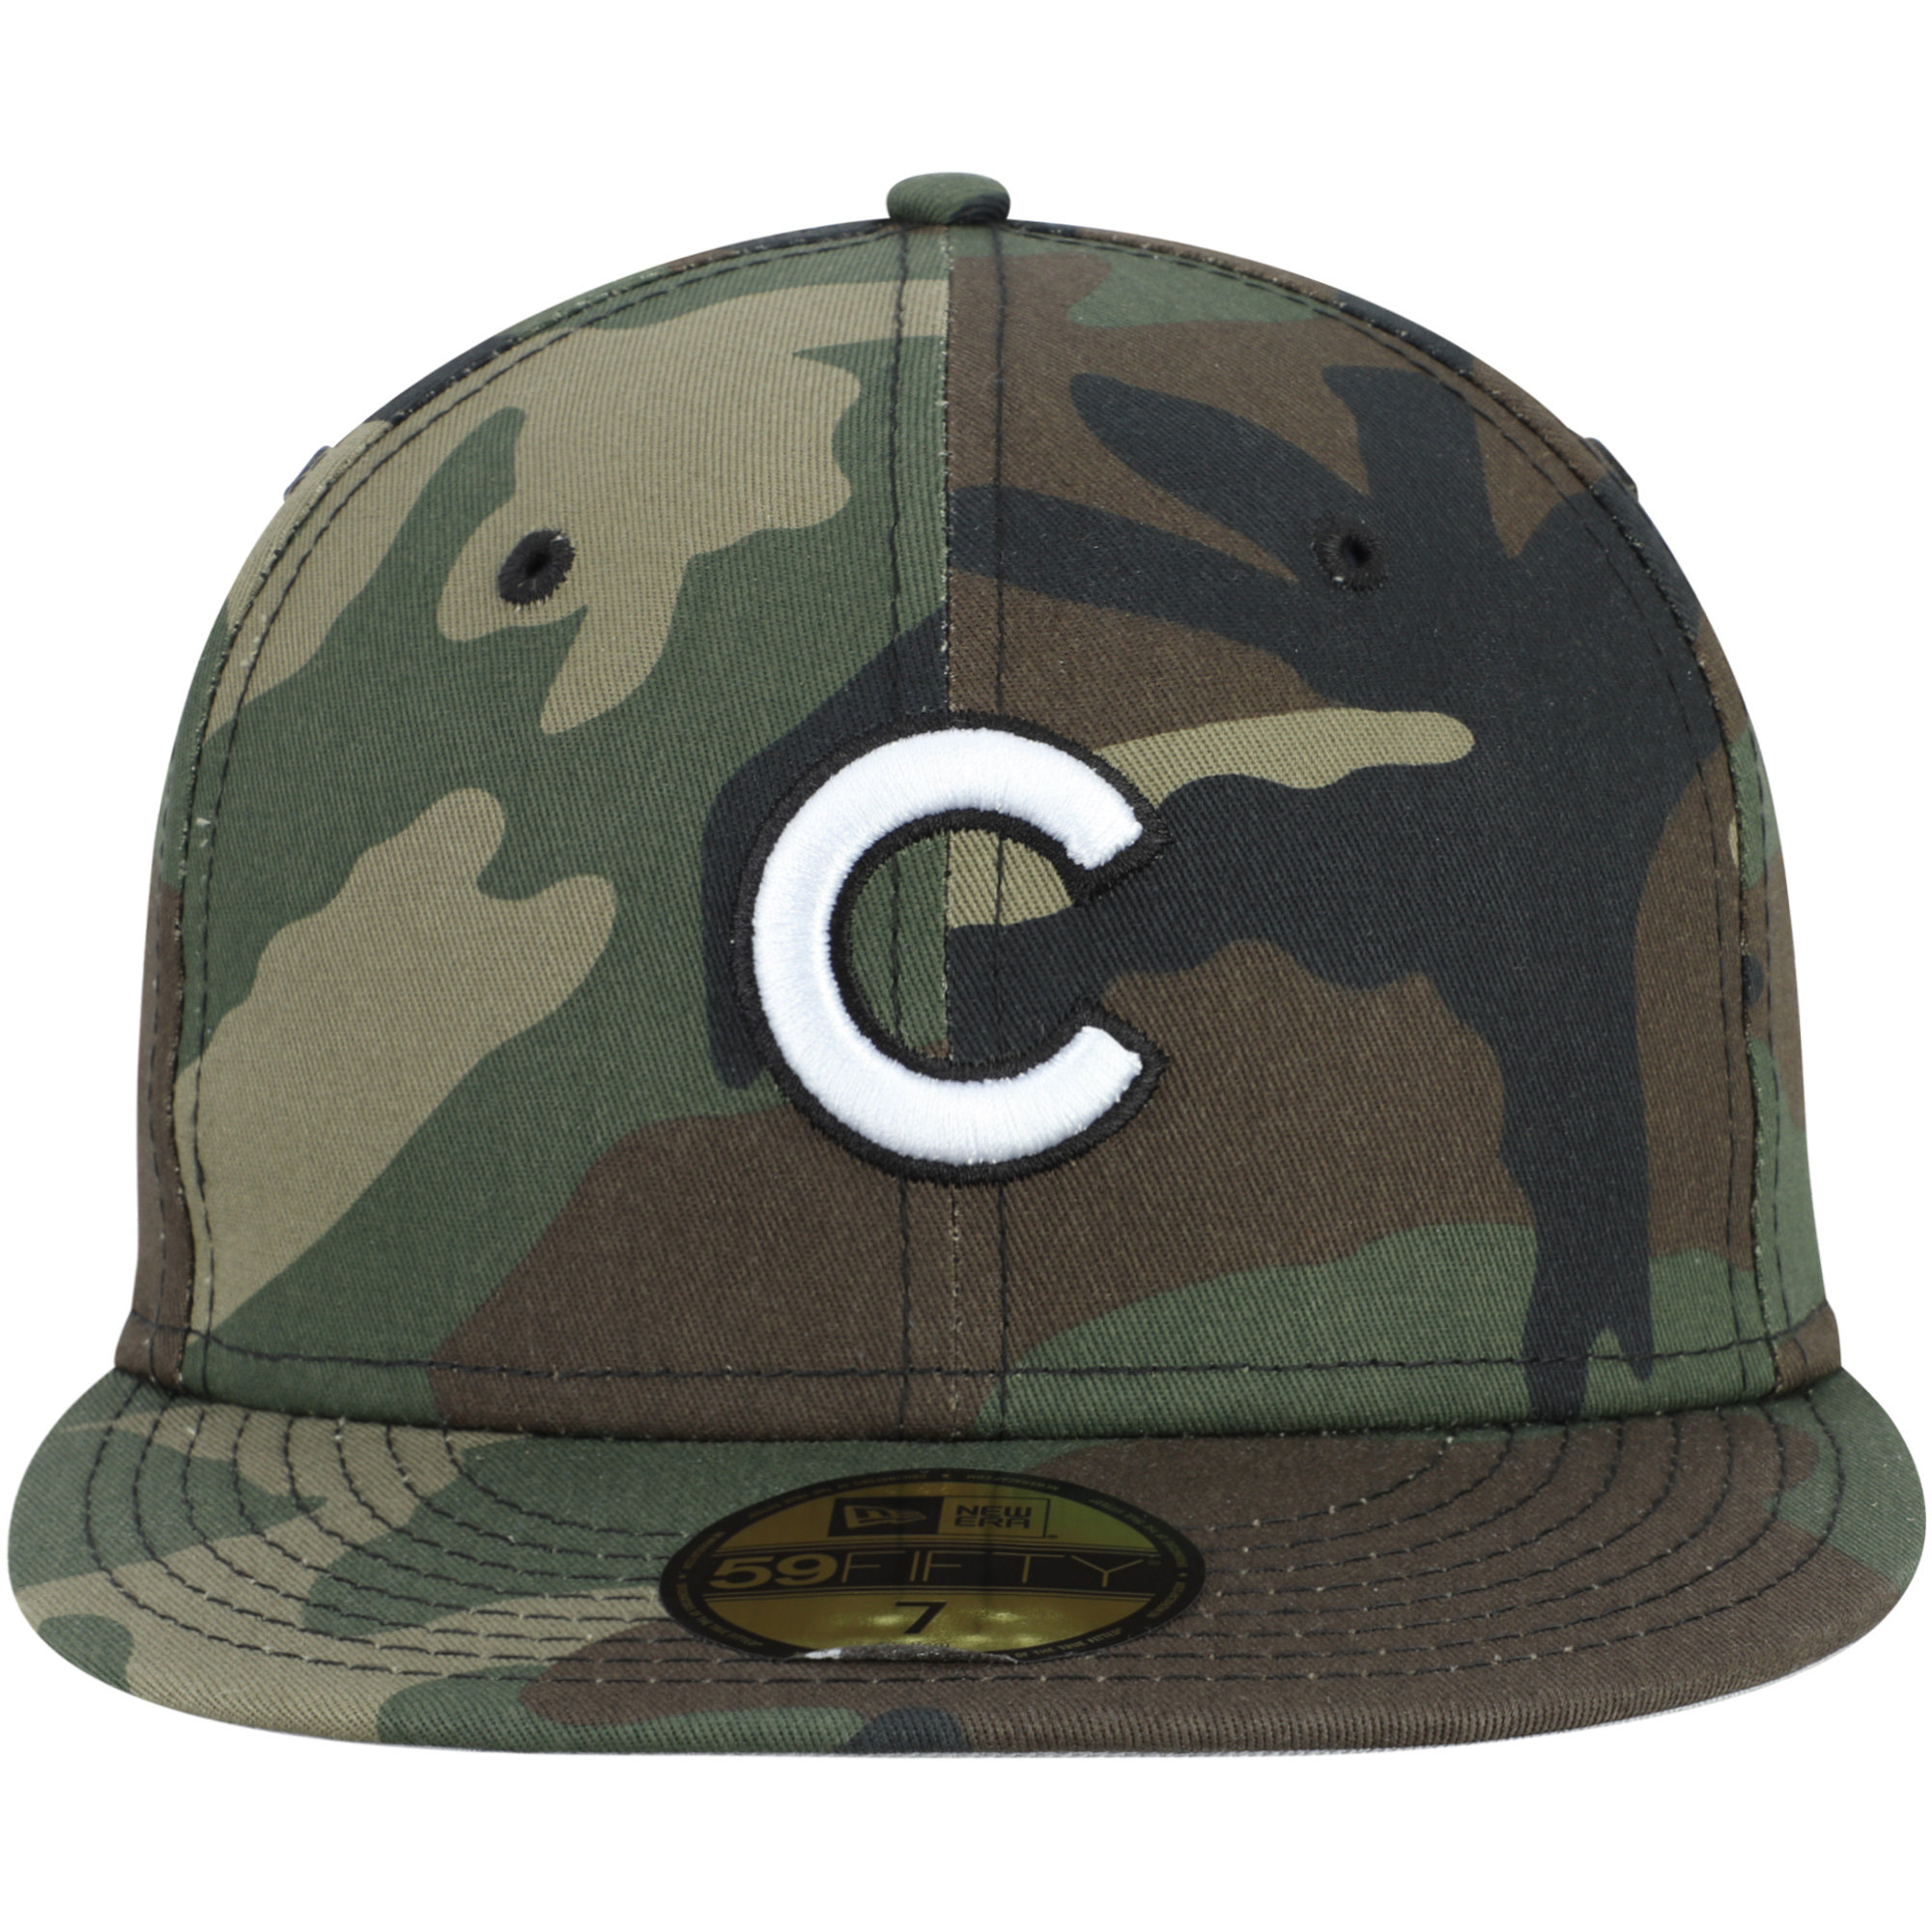 on sale e1068 d746c Chicago Cubs New Era Woodland Camo Basic 59FIFTY Fitted Hat - Camo -  Walmart.com